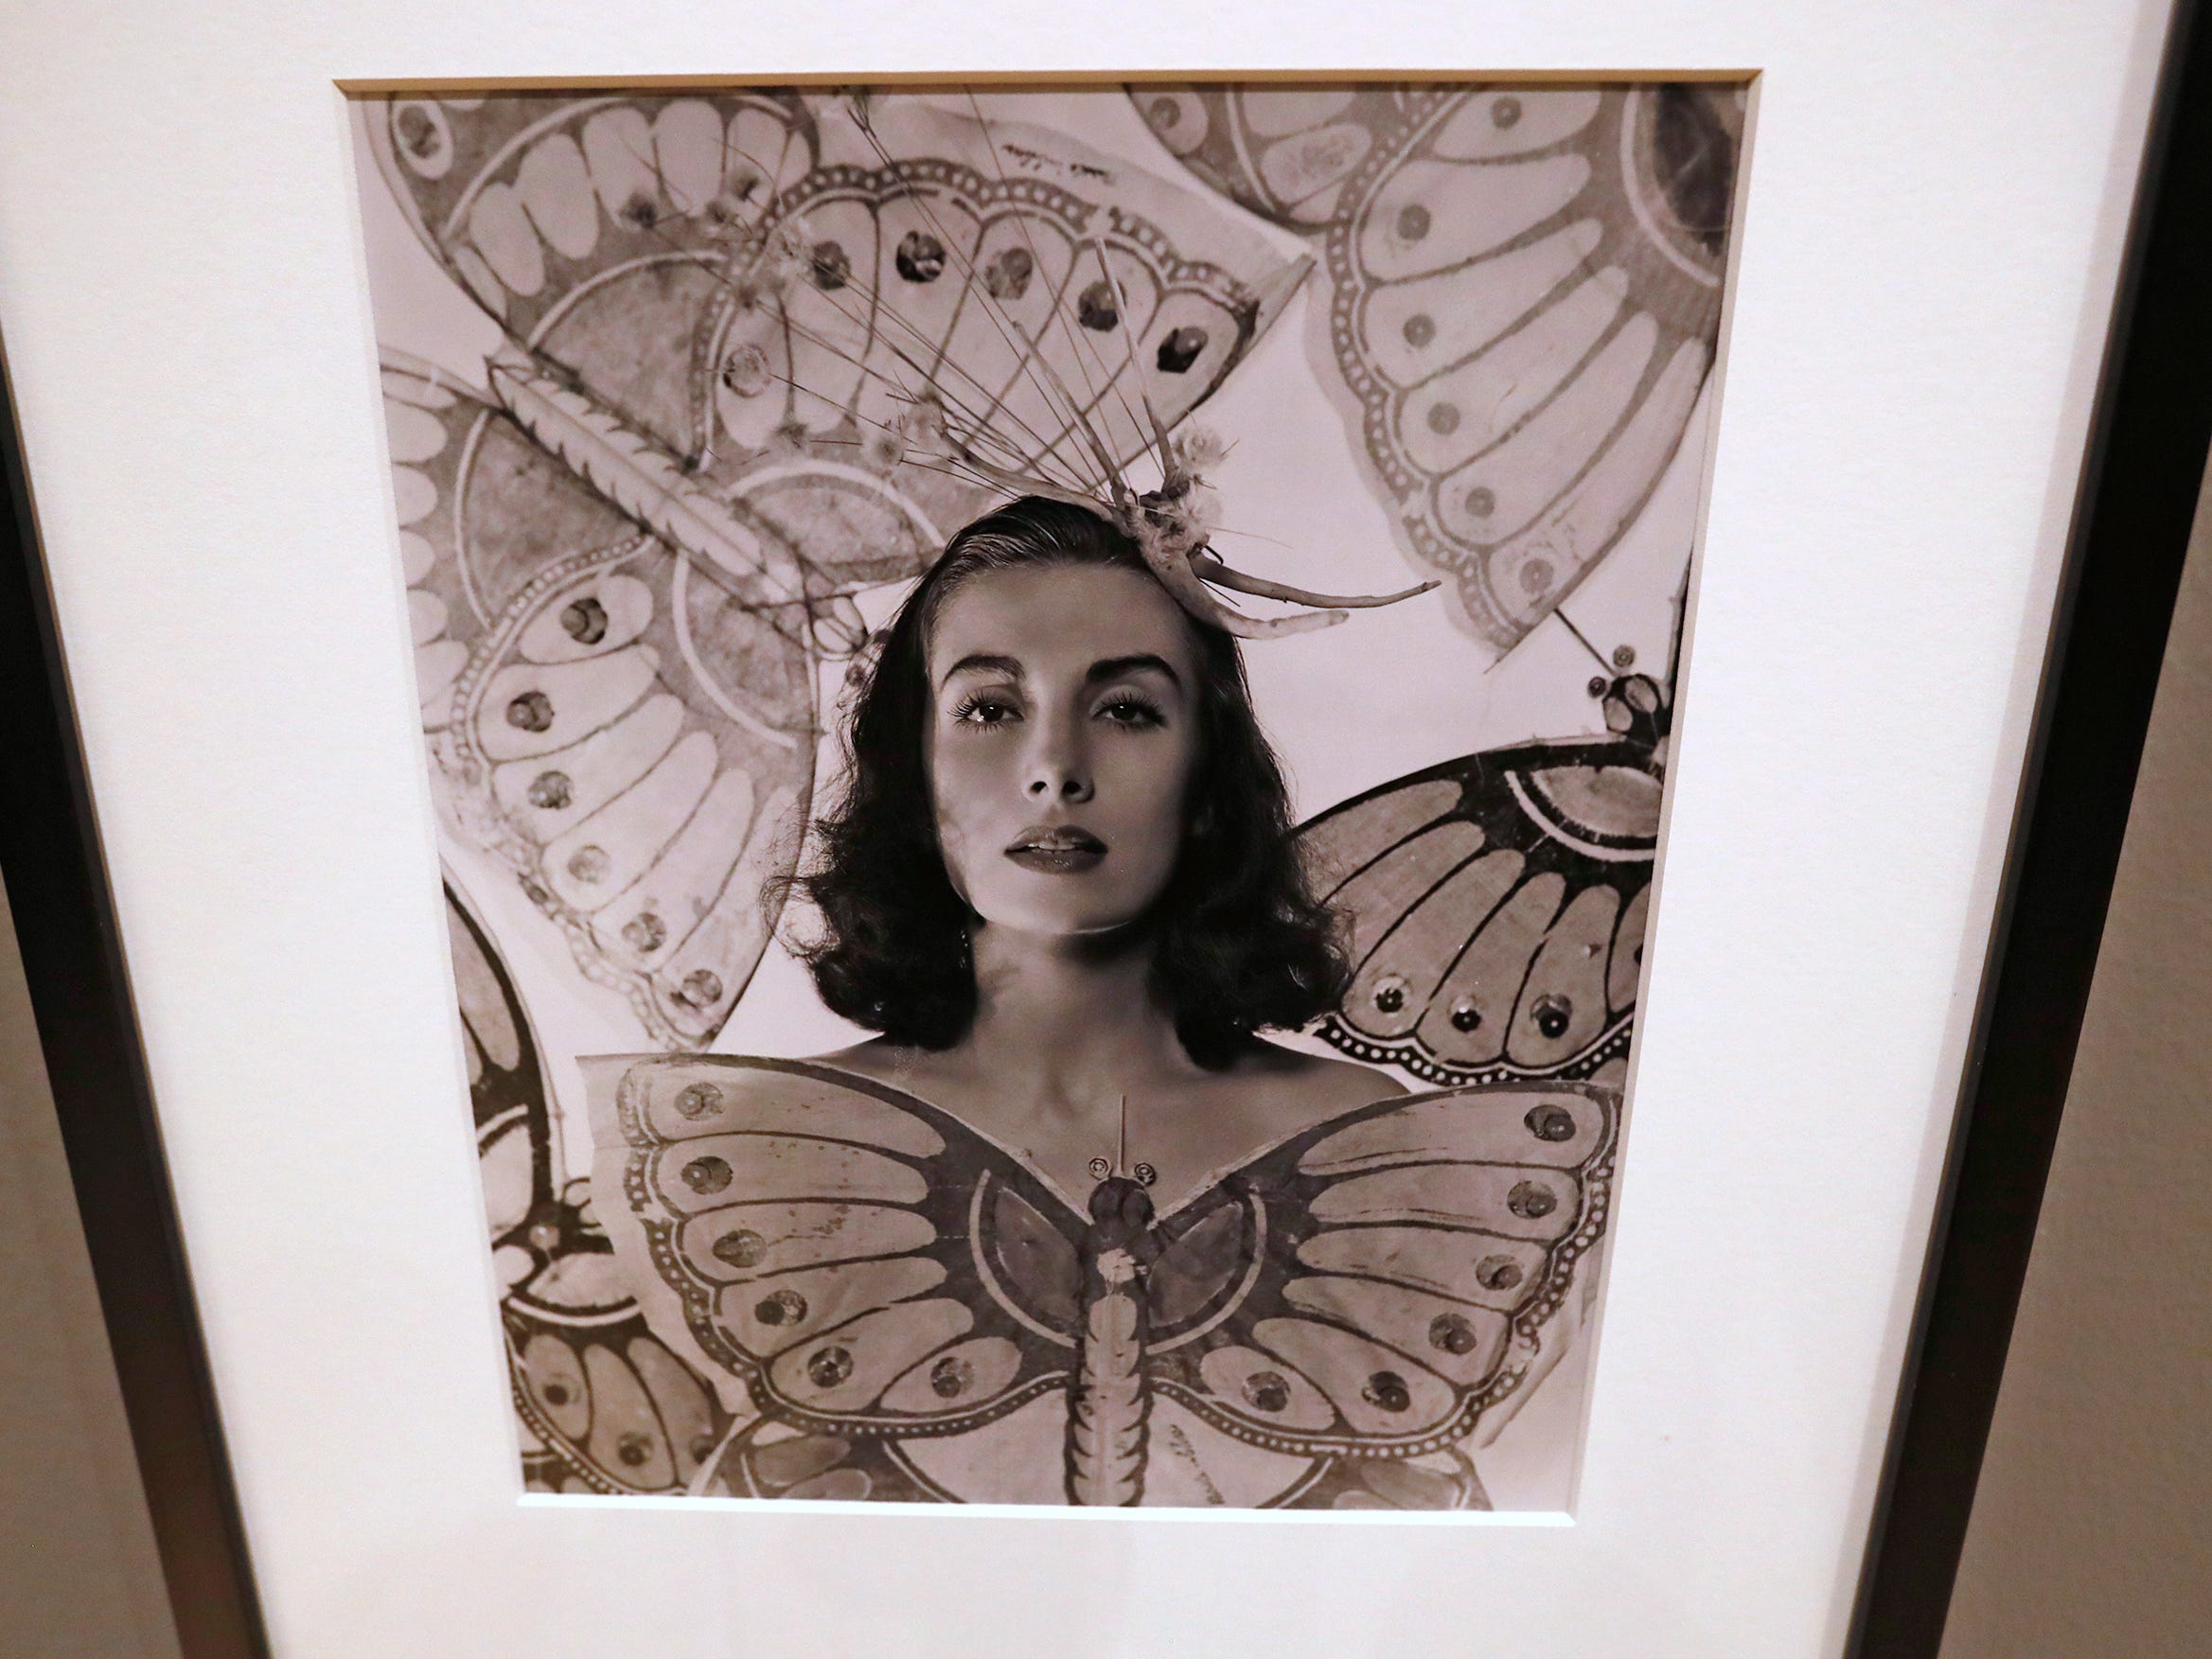 This 1941 gelatin silver print, fashion portrait by George Platt Lynes, from the Collections of the Kinsey Institute, Indiana University, is seen at the George Platt Lynes exhibit at Newfields, Wednesday, Sept. 26, 2018.  Lynes gained fame as a commercial and ballet photogrqapher in the 1930s and 1940s, but he wanted to be known for the male nudes he captured of the male ballet dancers and others.  The exhibit runs Sept. 30, 2018 through Feb. 24, 2019.